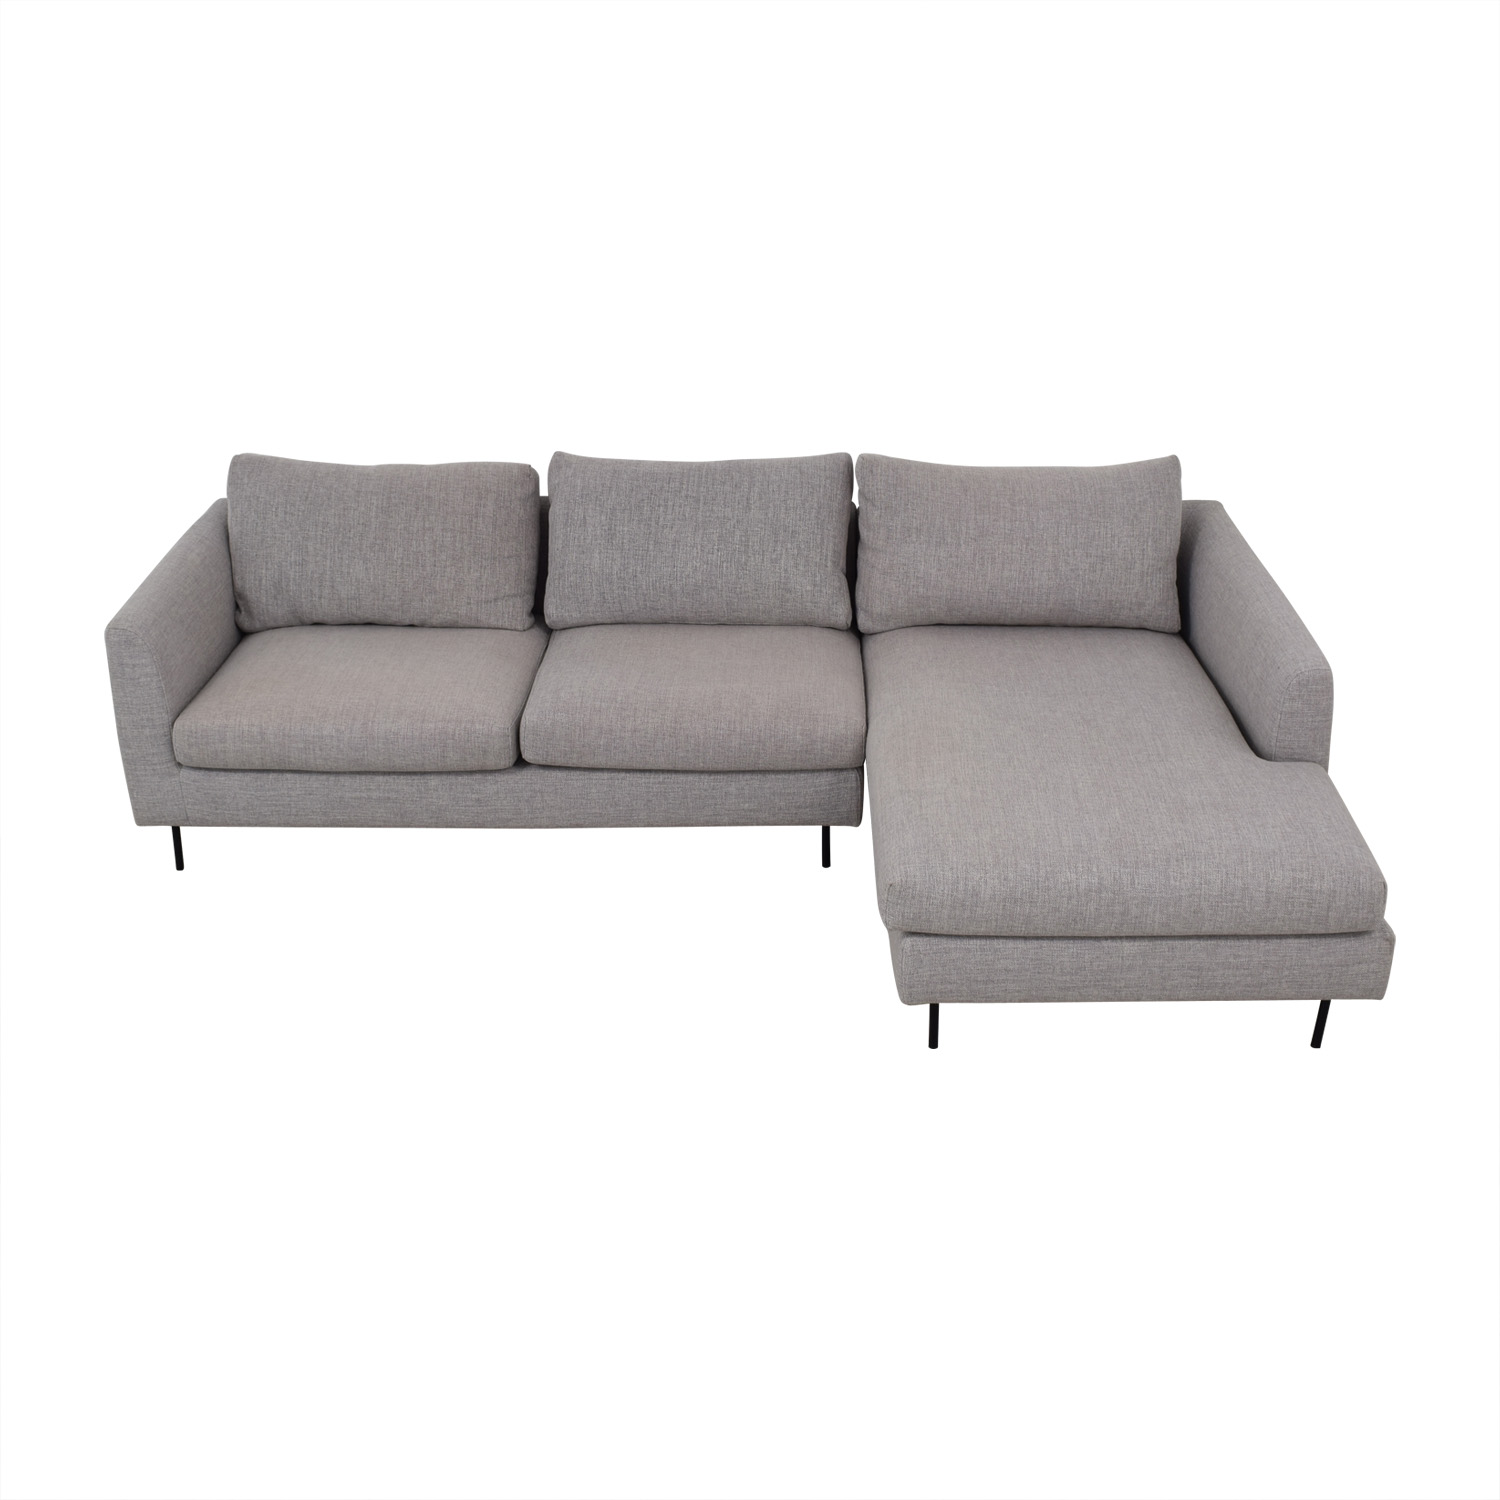 Interior Define Interior Define Owens Grey Right Chaise Sectional nyc